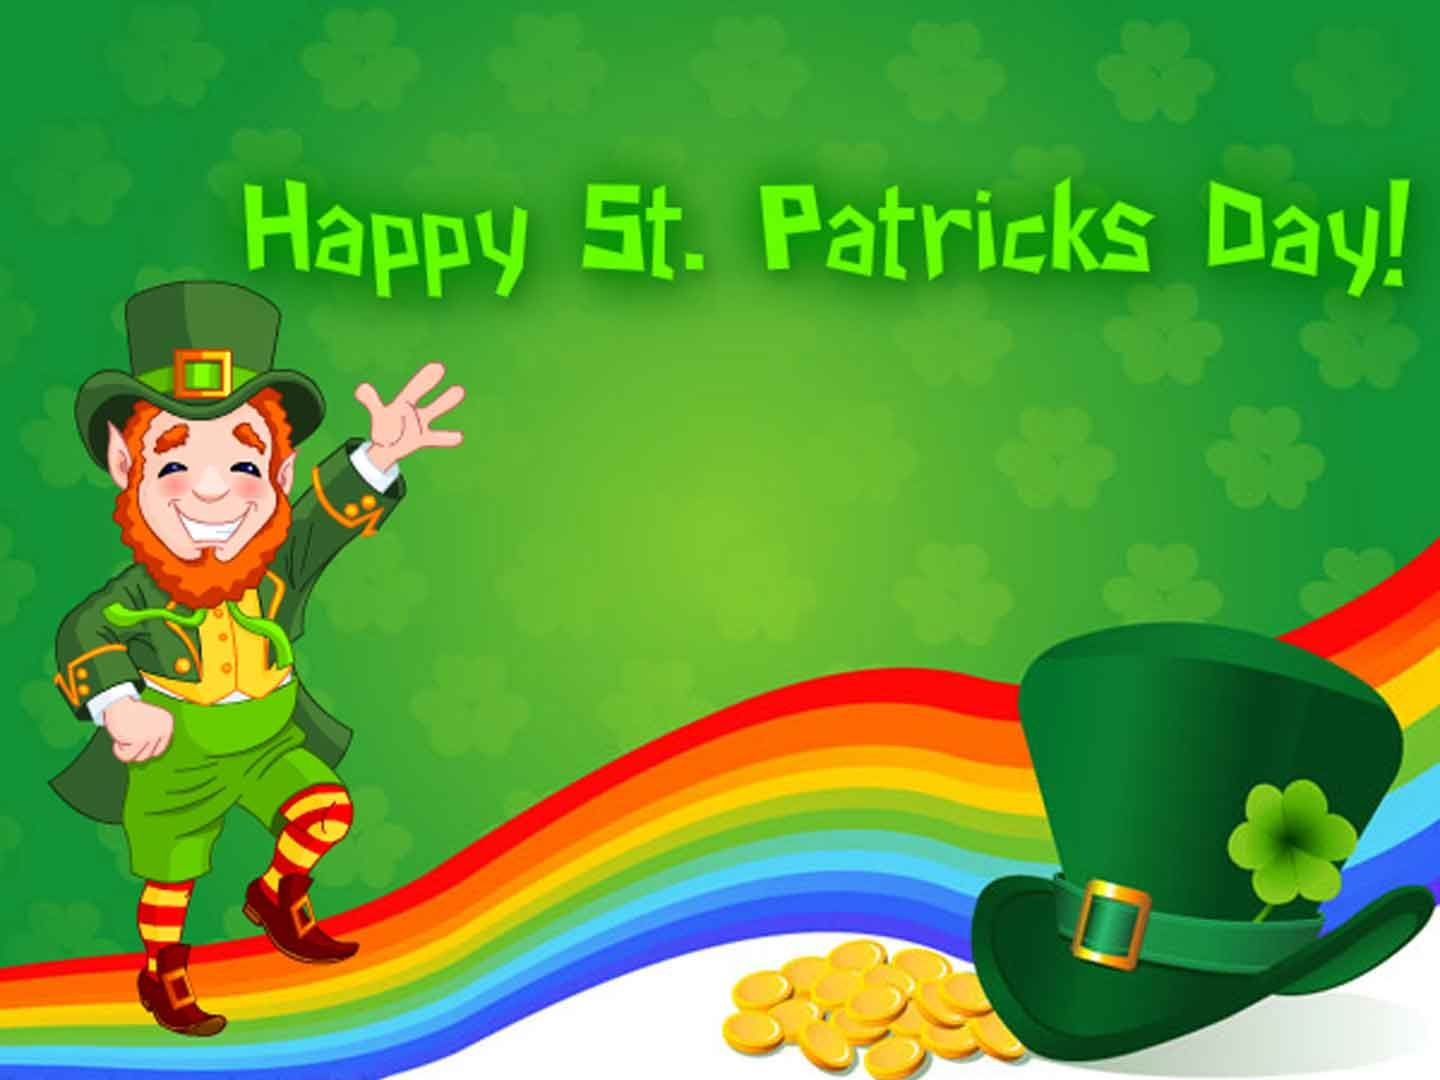 Saint Patricks Day Wallpapers wallpapers 2020 Check more at 1440x1080